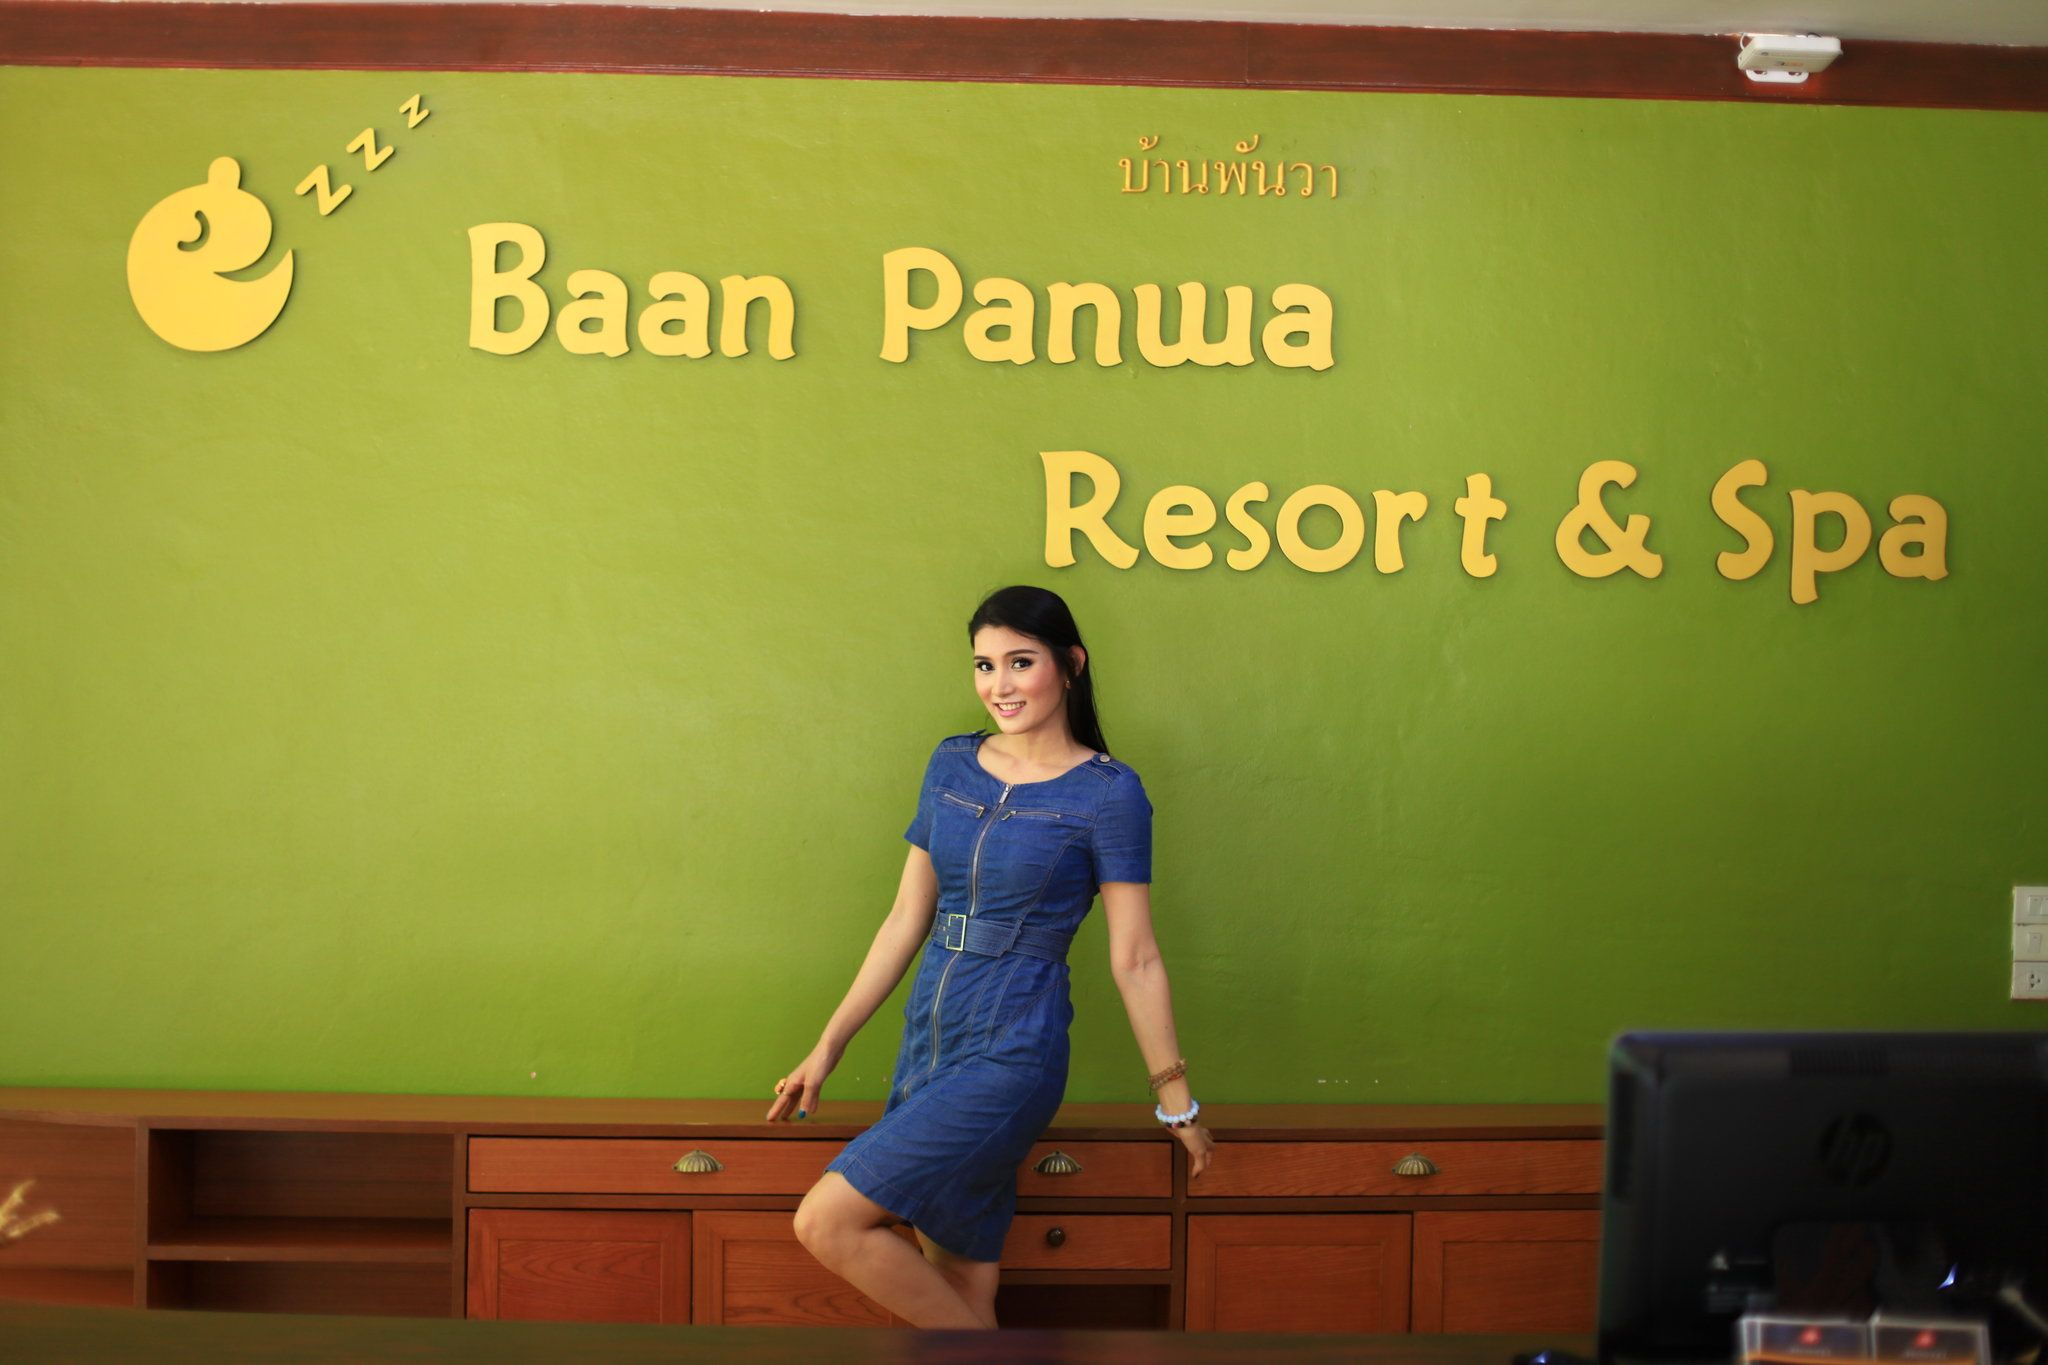 Baan Panwa Resort and Spa